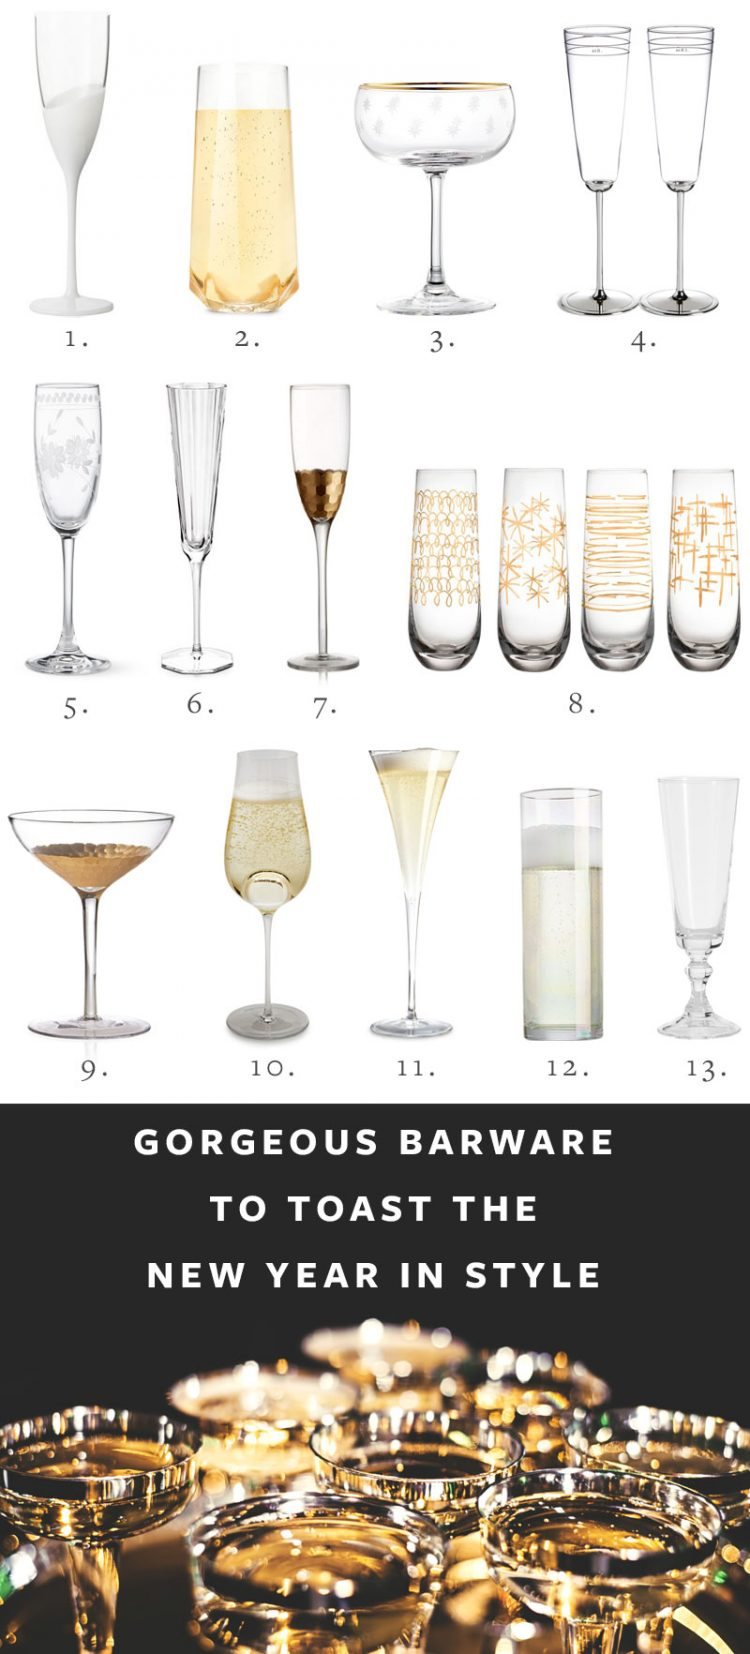 Gorgeous Barware to Toast the New Year in Style via jojotastic.com #entertaining #hostess #hosting #entertainingessentials #NYE #newyearseve #newyears #champagne #champagneflute #coupeglass #coupe #glassware #barware